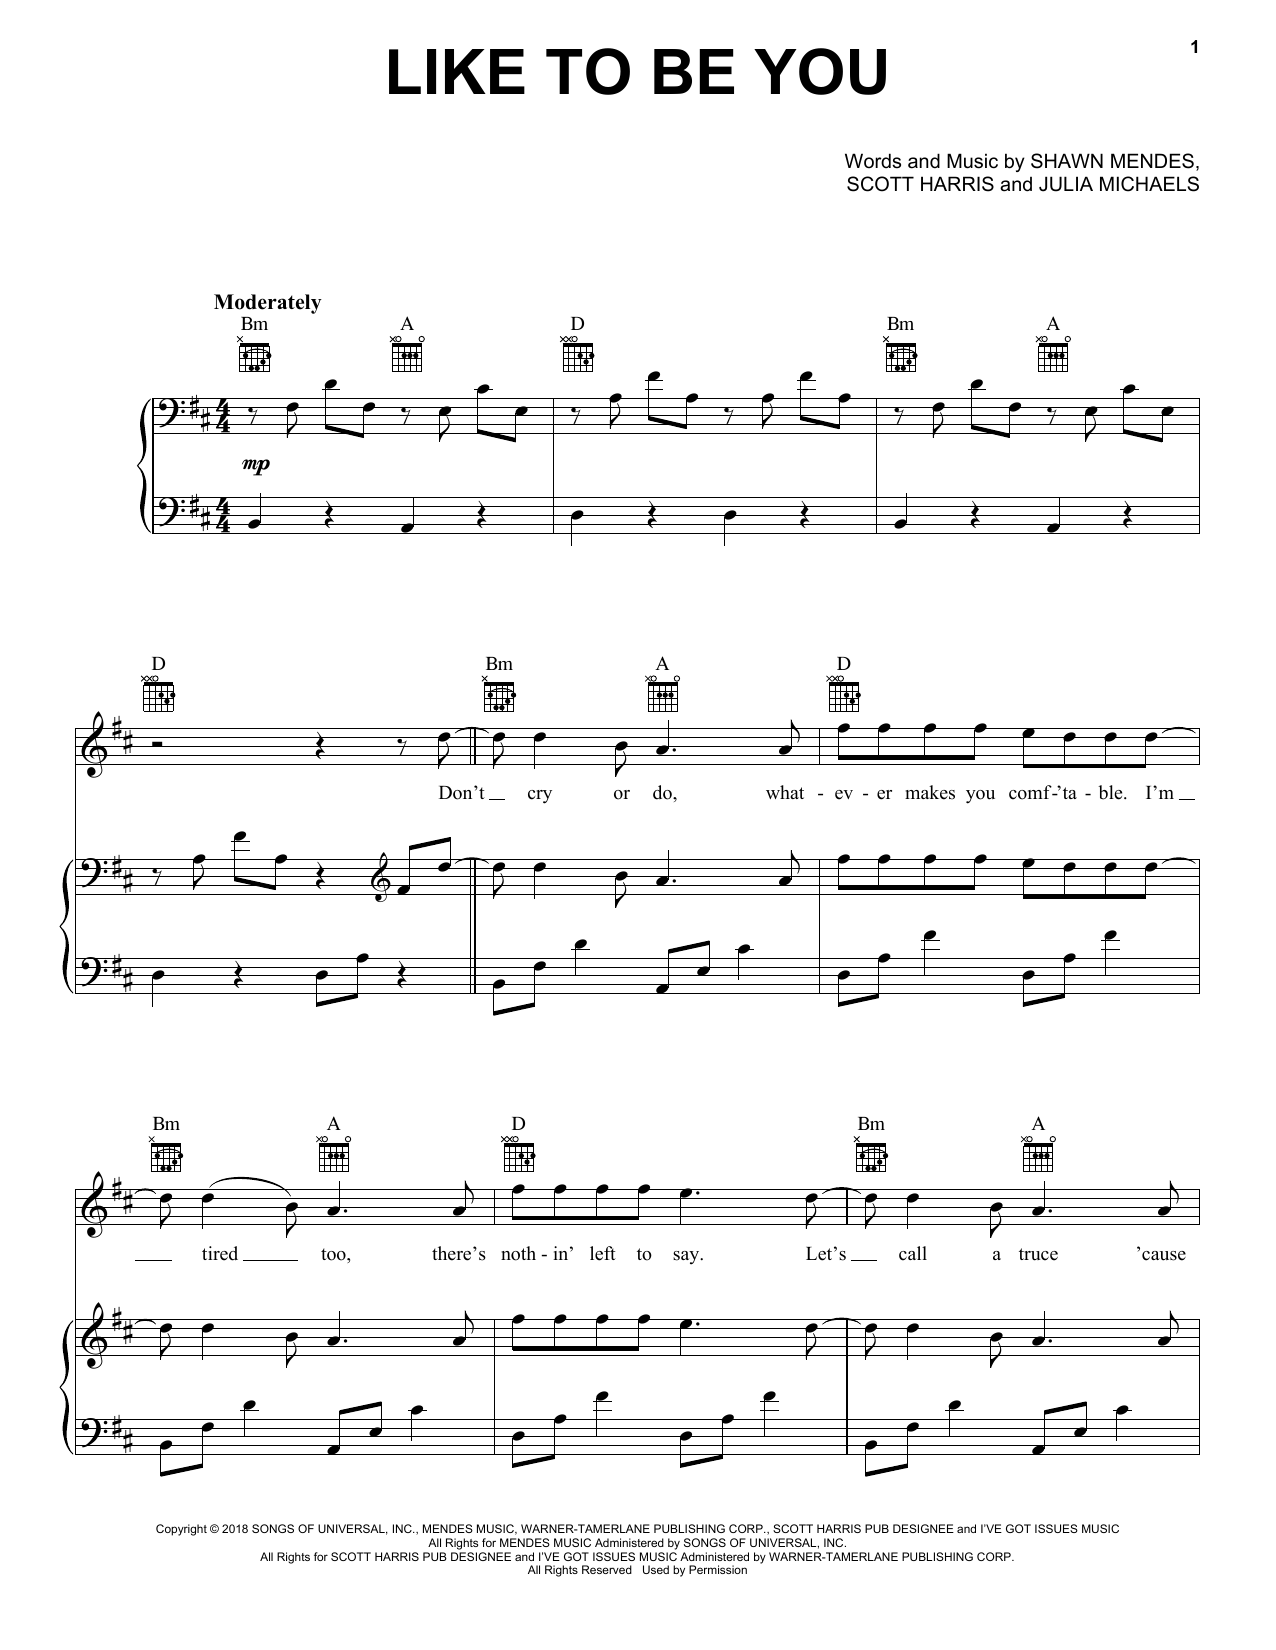 Shawn Mendes 'Like To Be You' Sheet Music Notes, Chords | Download  Printable Piano, Vocal & Guitar (Right-Hand Melody) - SKU: 403013